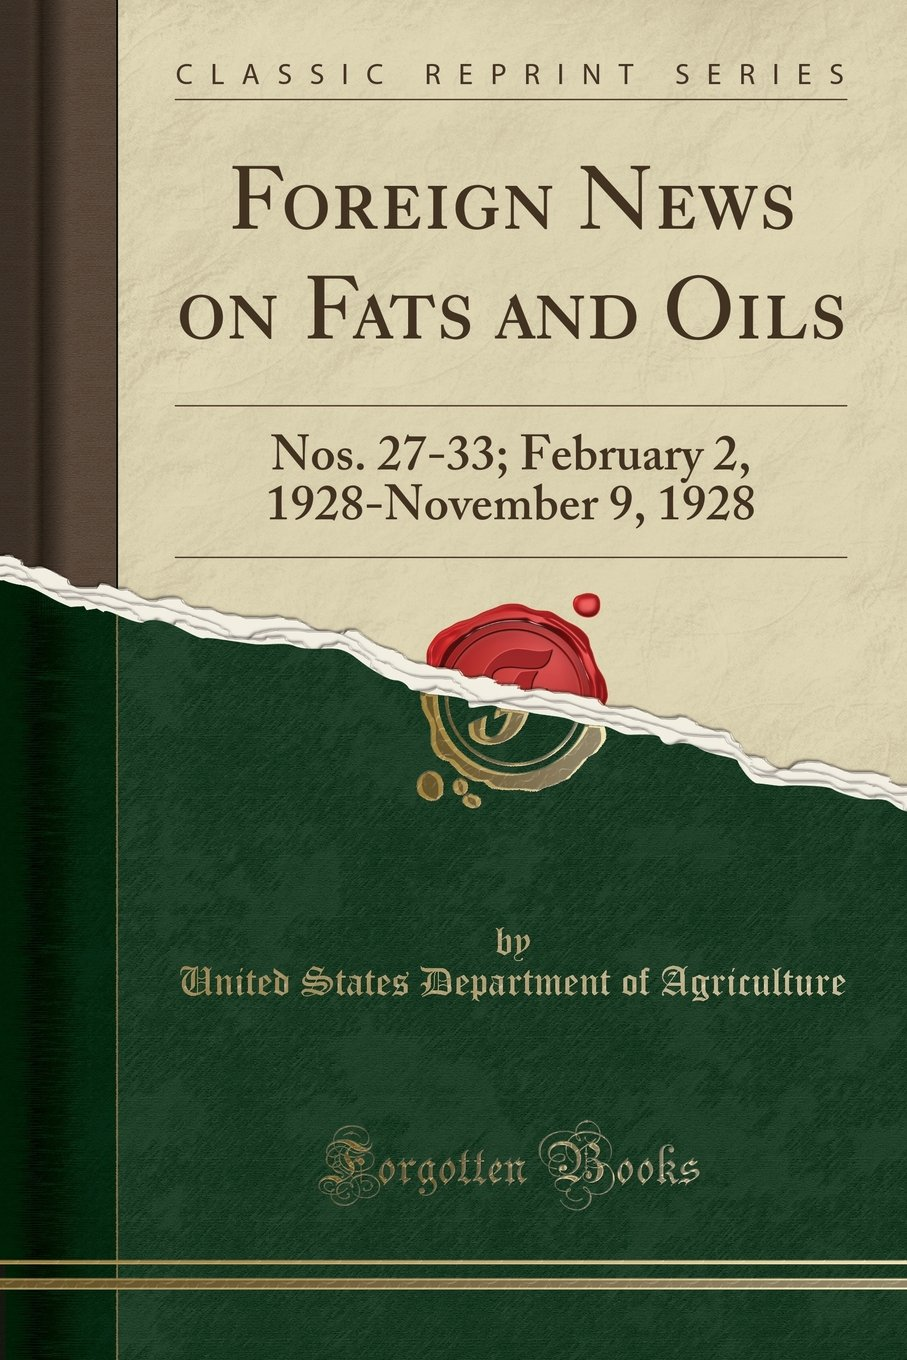 Download Foreign News on Fats and Oils: Nos. 27-33; February 2, 1928-November 9, 1928 (Classic Reprint) ebook